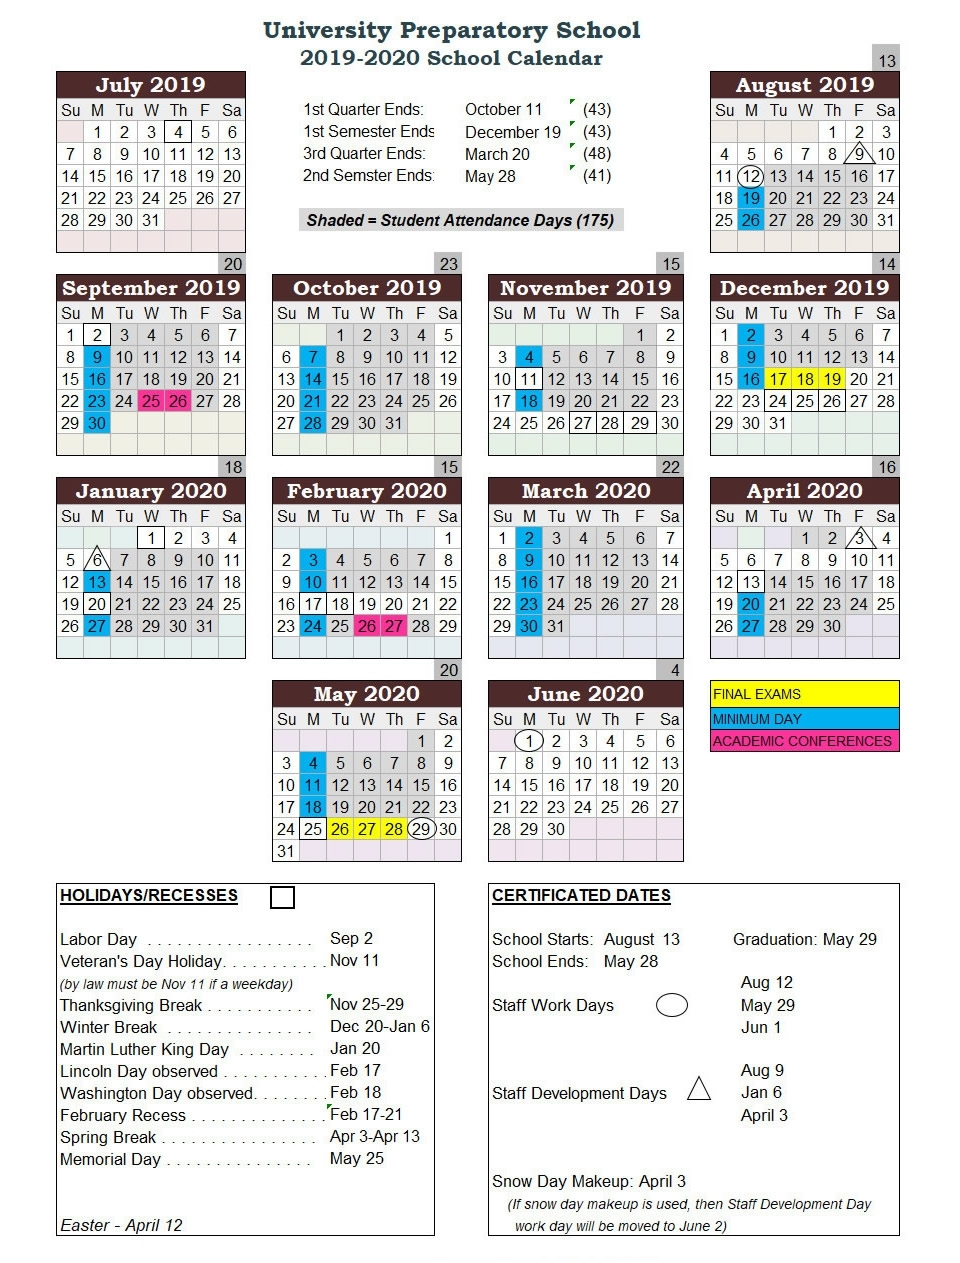 U Of M School Calendar 2020 | Calendar Design Ideas intended for U Of M Calendar 2019-2020 School Year